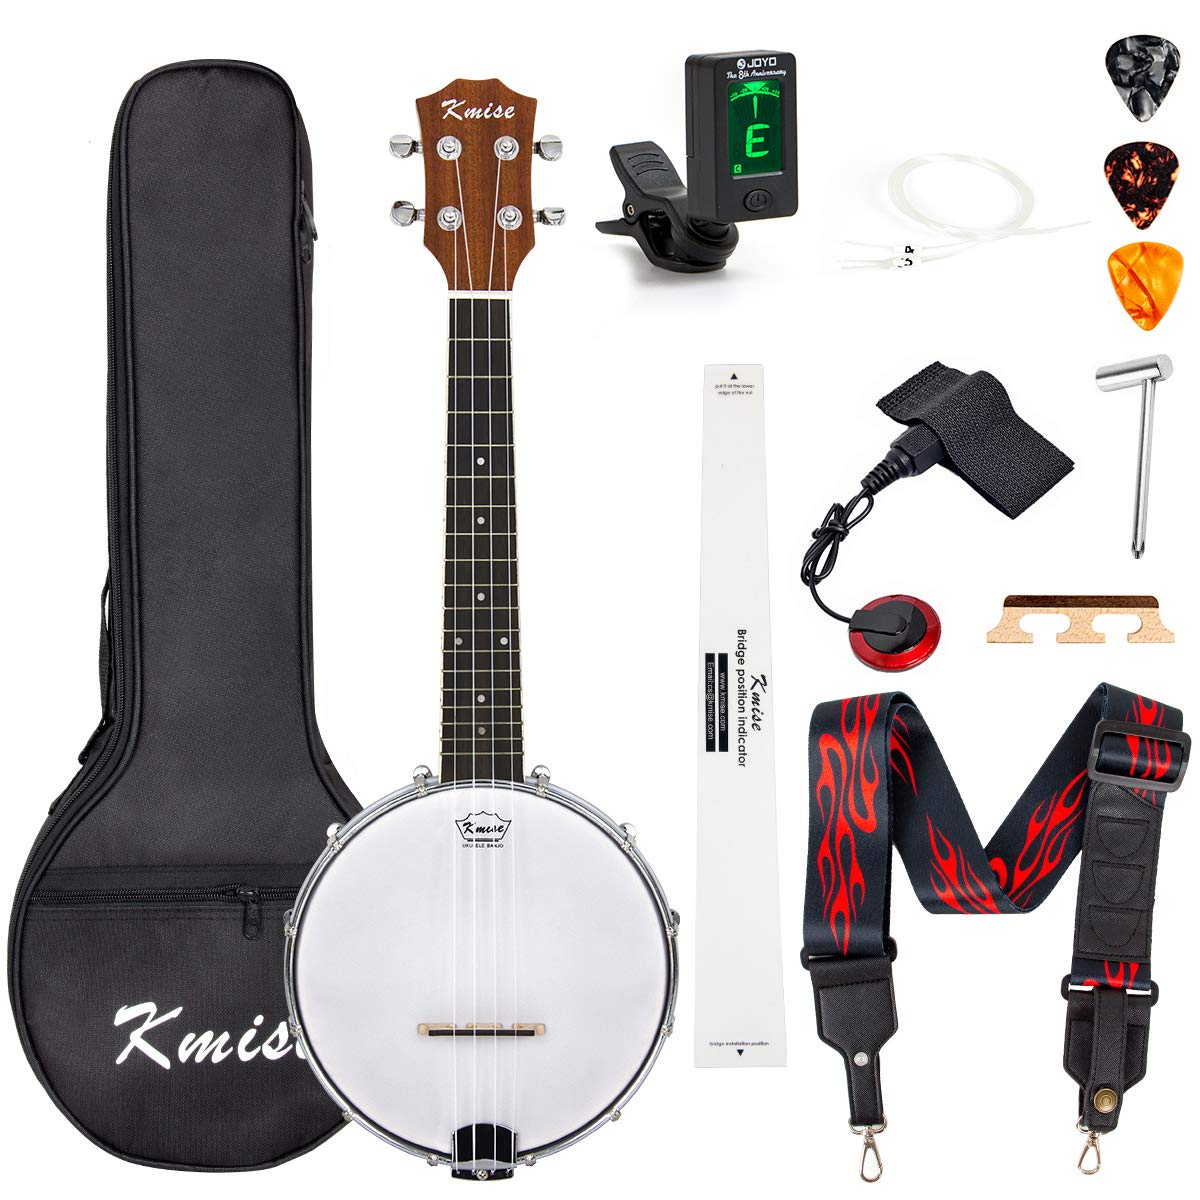 Kmise 7092660 Banjo Ukulele 4 String Ukelele Uke Concert 23 Inch Size Maple with Bag Tuner Shenzhen Lotmusic Technologe Co. Ltd MI1994-KUS